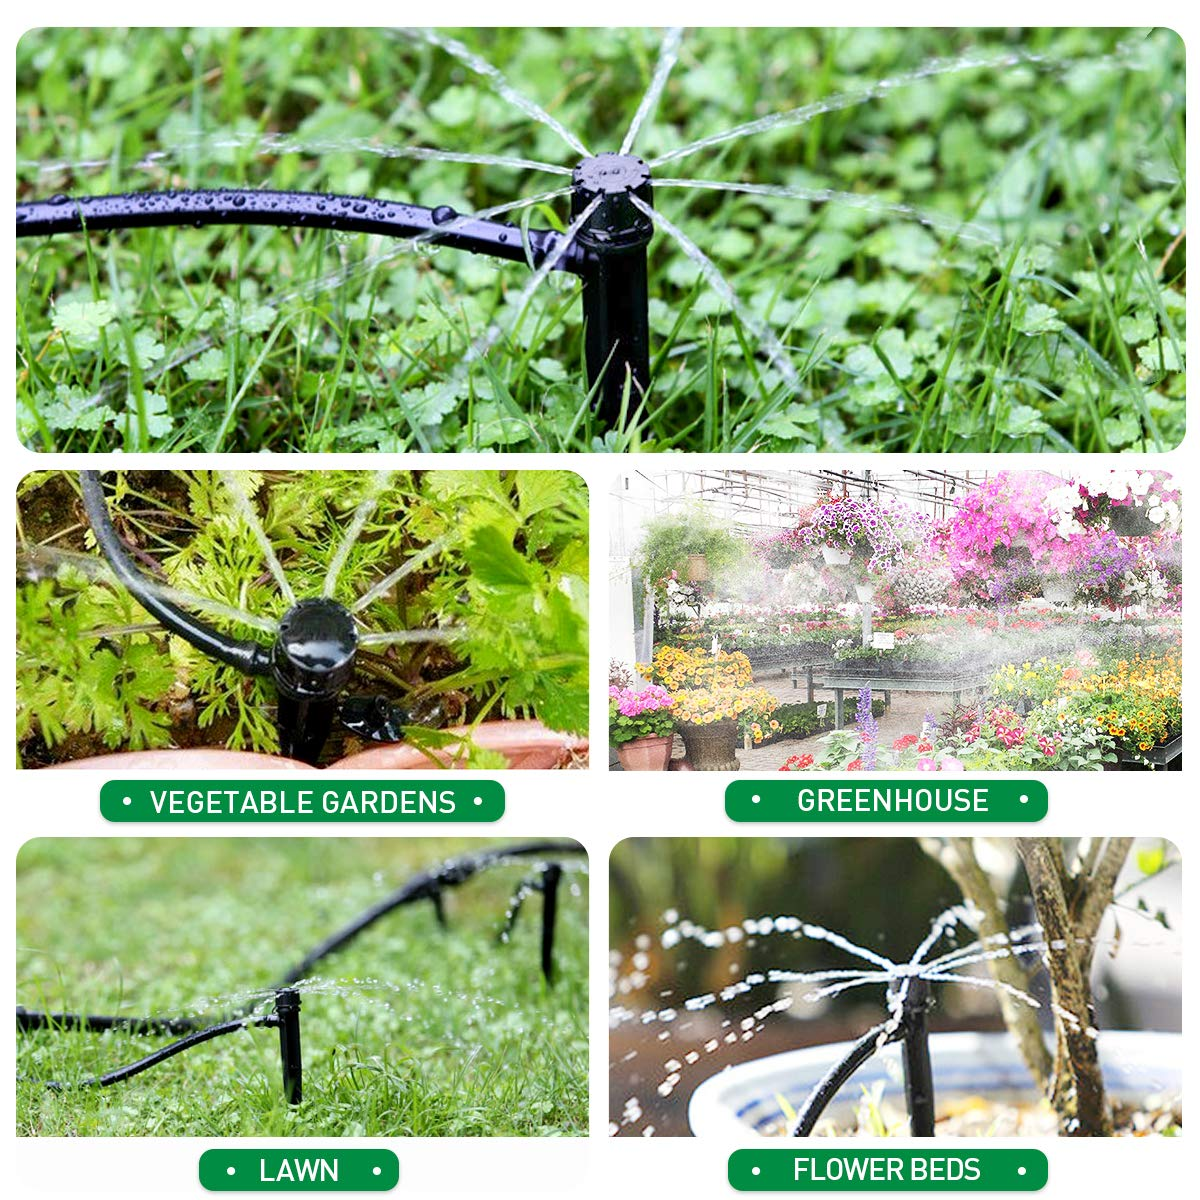 HIRALIY 50ft Drip Irrigation Kits 1//4 Blank Distribution Tubing Plant Watering System DIY Saving Water Automatic Irrigation Equipment Set for Patio Lawn Garden Greenhouse Flower Bed